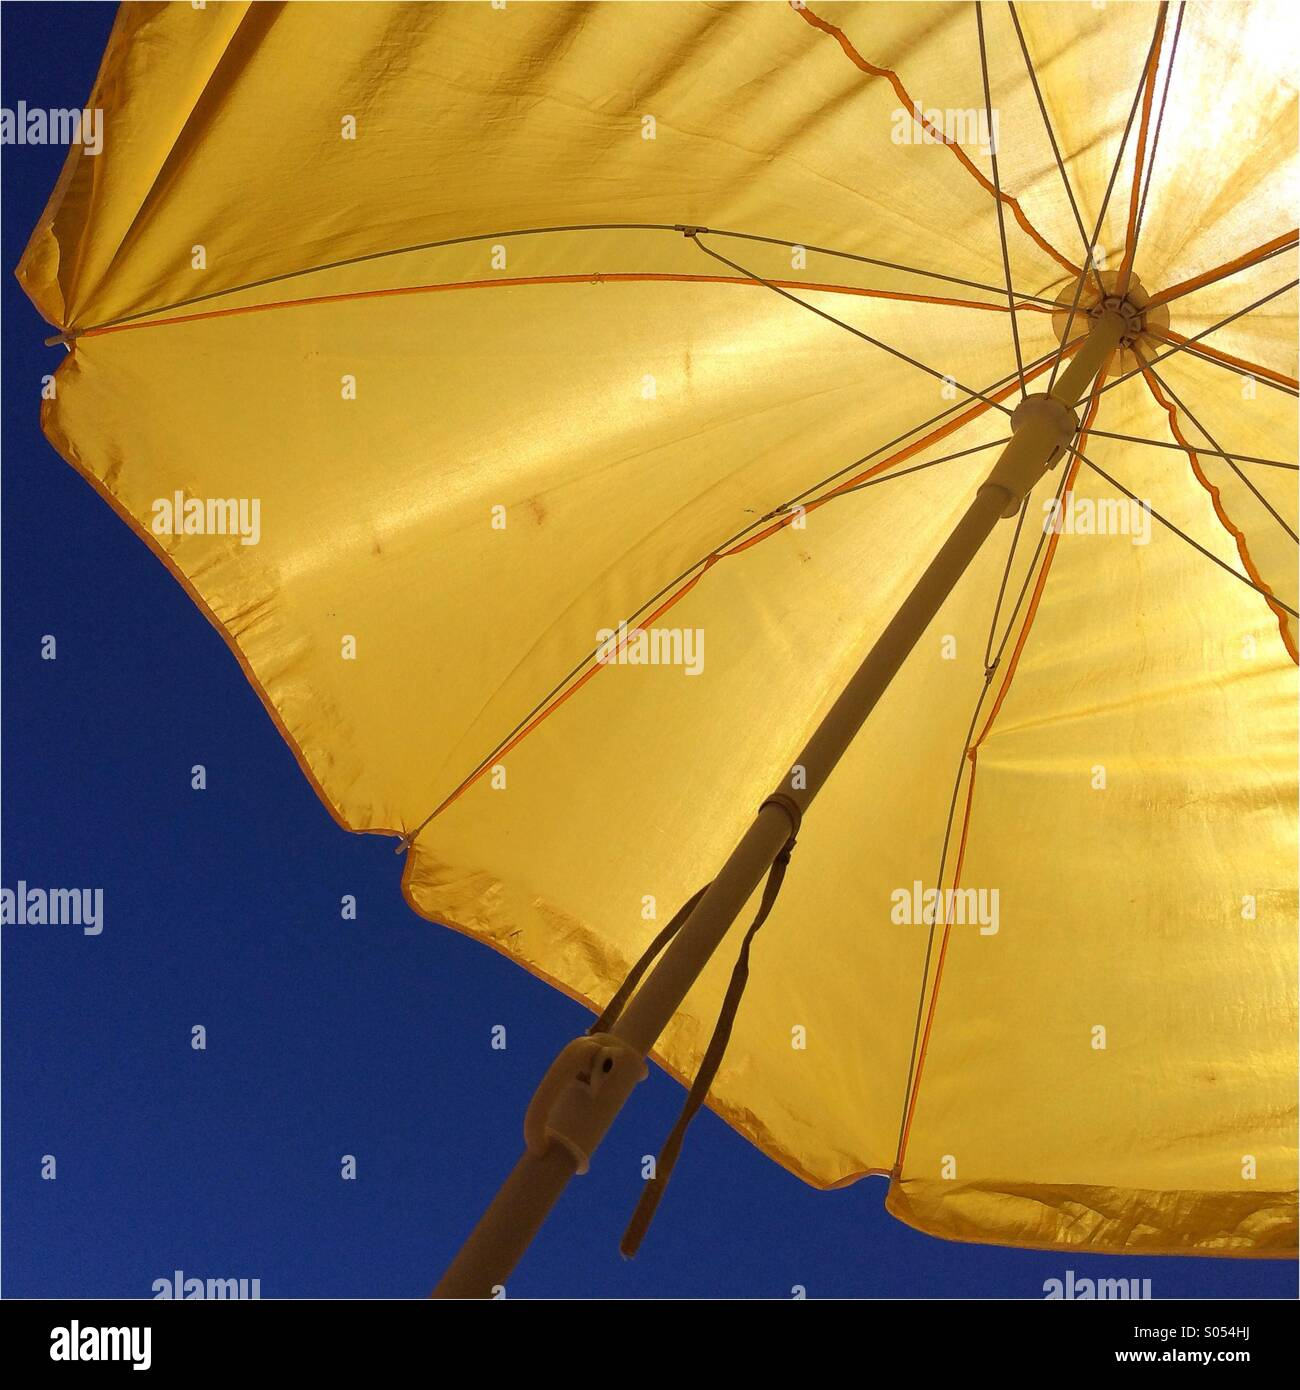 Parasol de plage jaune contre le ciel bleu Photo Stock